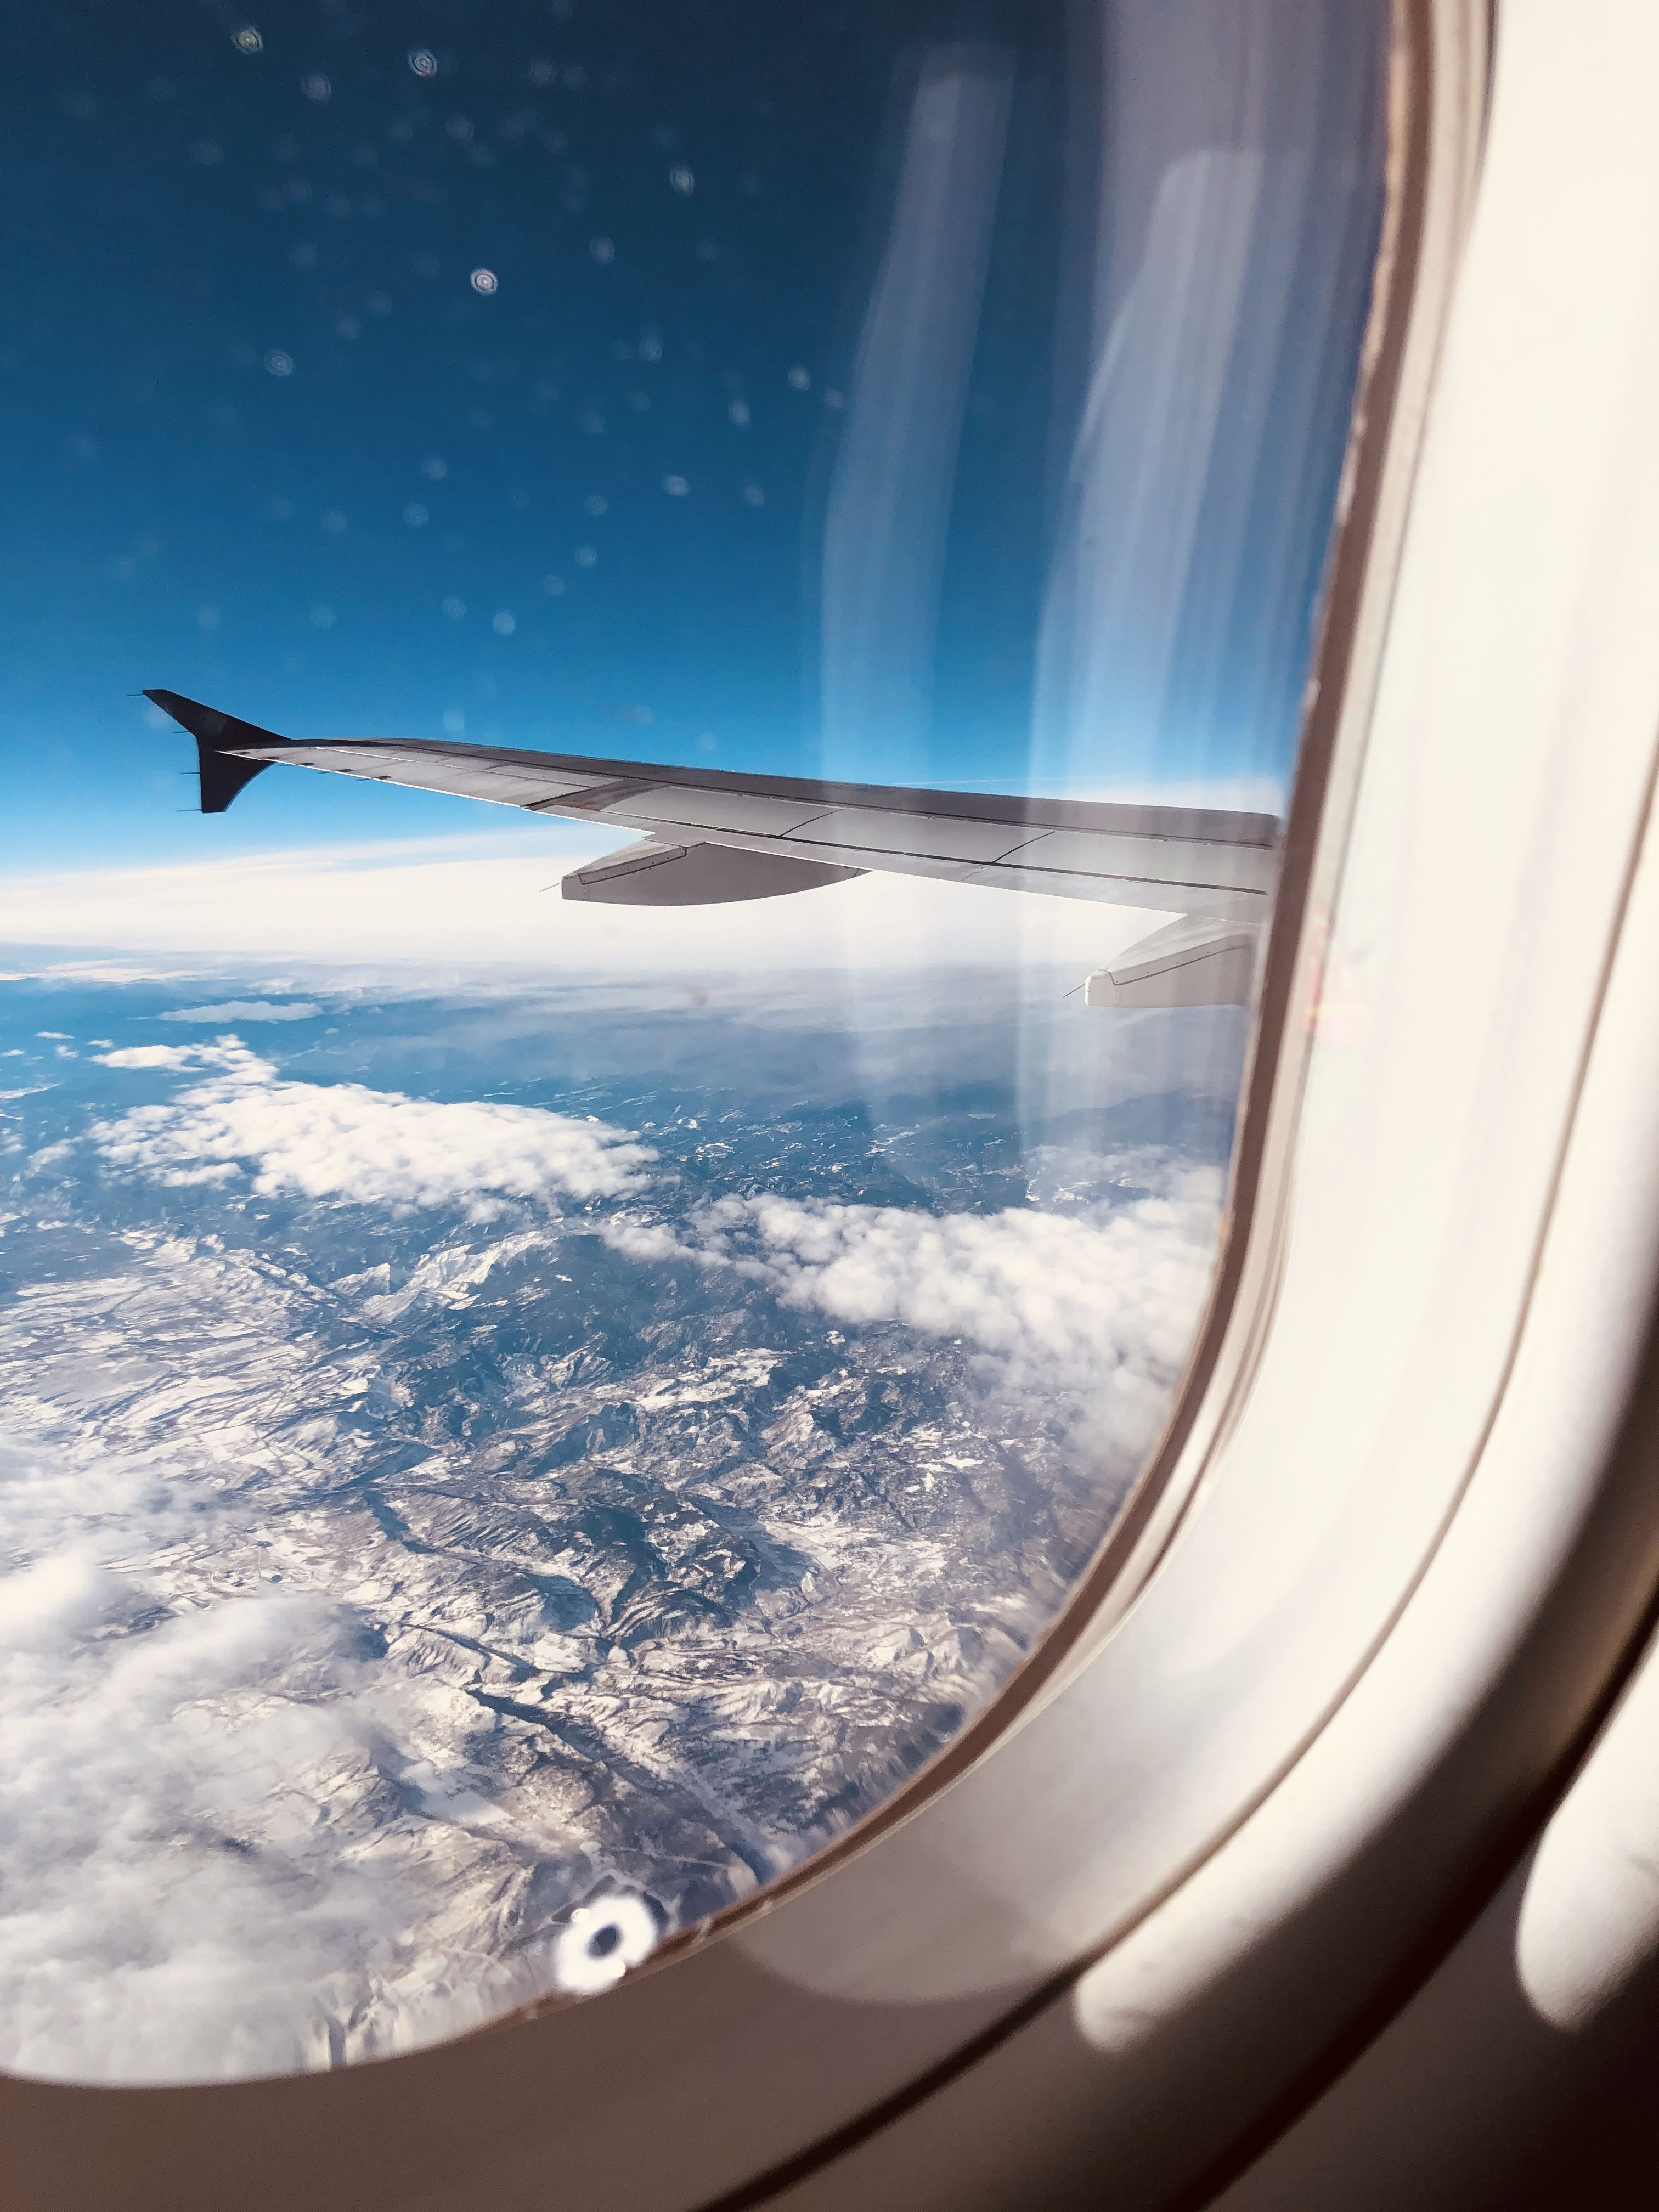 Riทtyeɾyest Camiℓsyeɾɾa Riทtyeɾyest Camiℓsyeɾɾa Release Your Use Of Rc Product Jets Offers Erupted T In 2020 Travel Aesthetic Travel Pictures Travel Photography